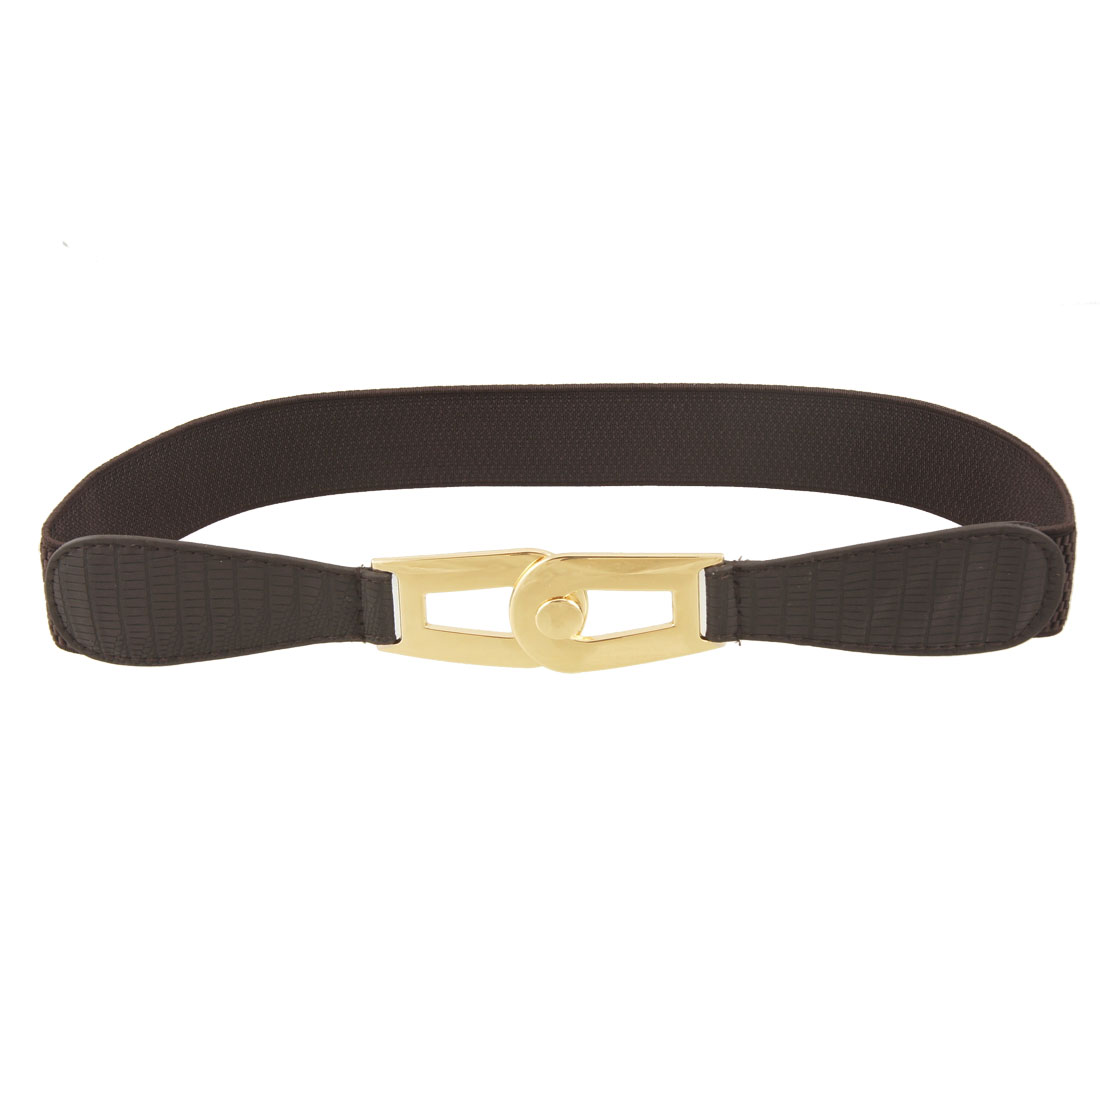 Lady Gold Tone Interlocking Buckle Chocolate Color Elastic Waist Belt